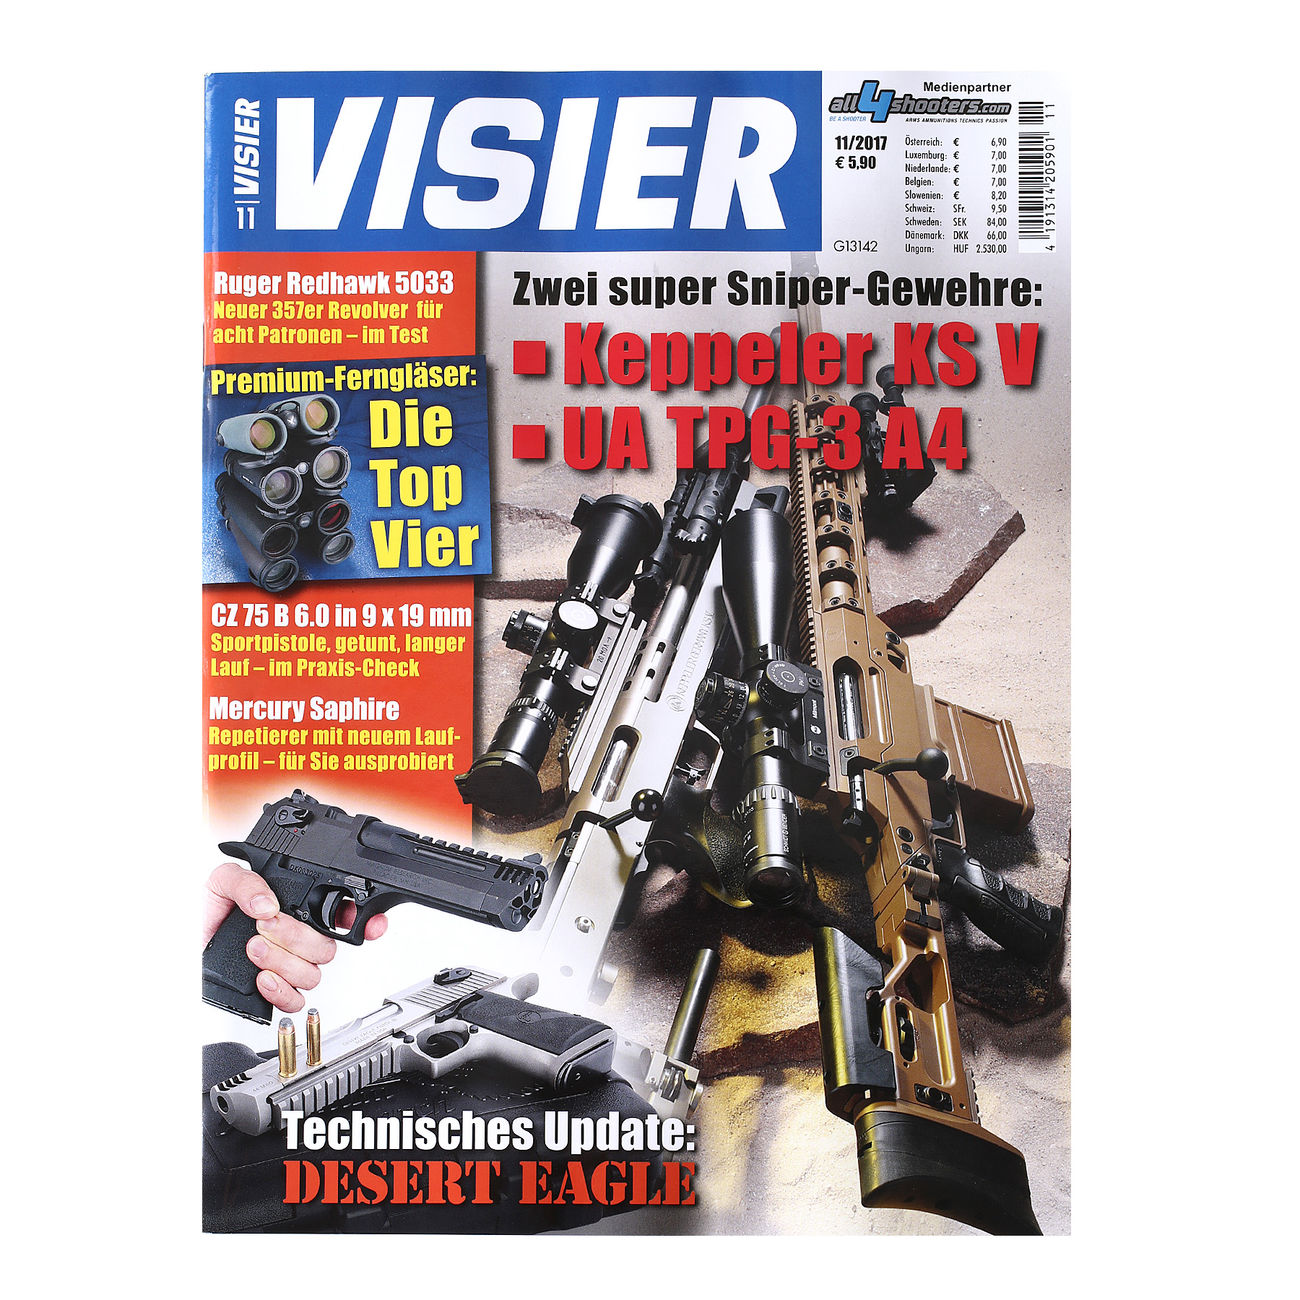 Visier - Das internationale Waffenmagazin 11/2017 1